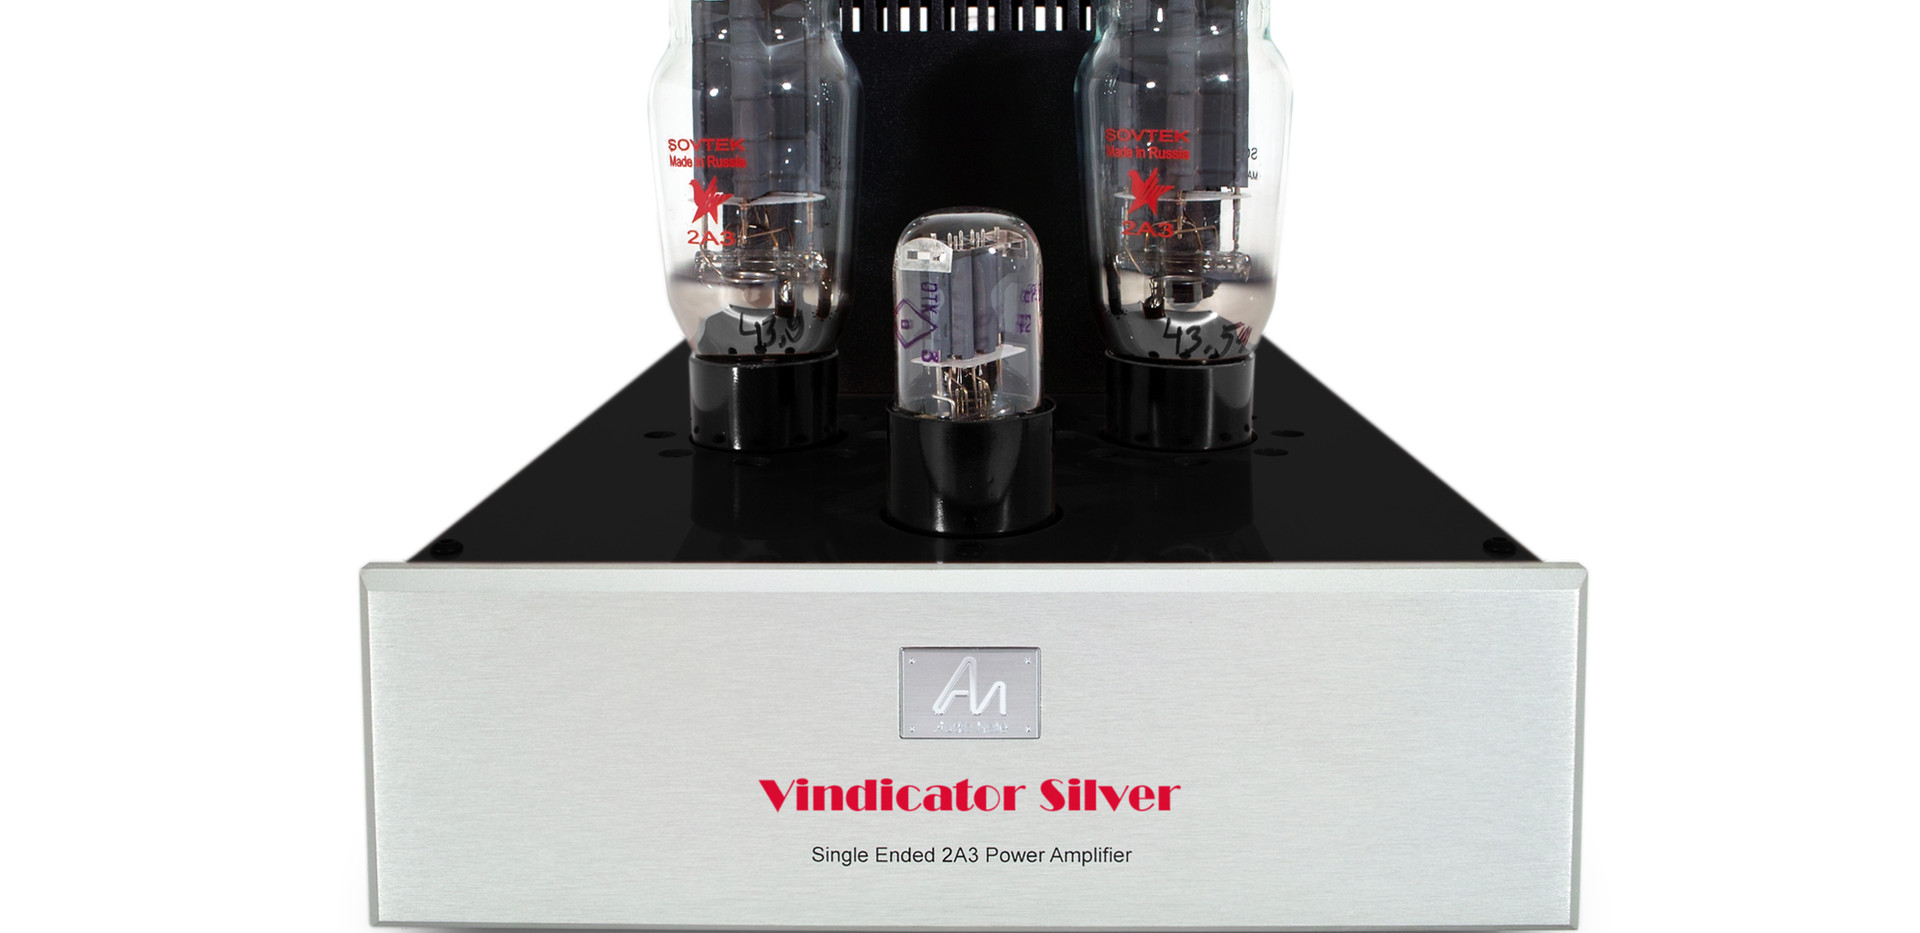 Vindicator Silver Front Black top Ali fa